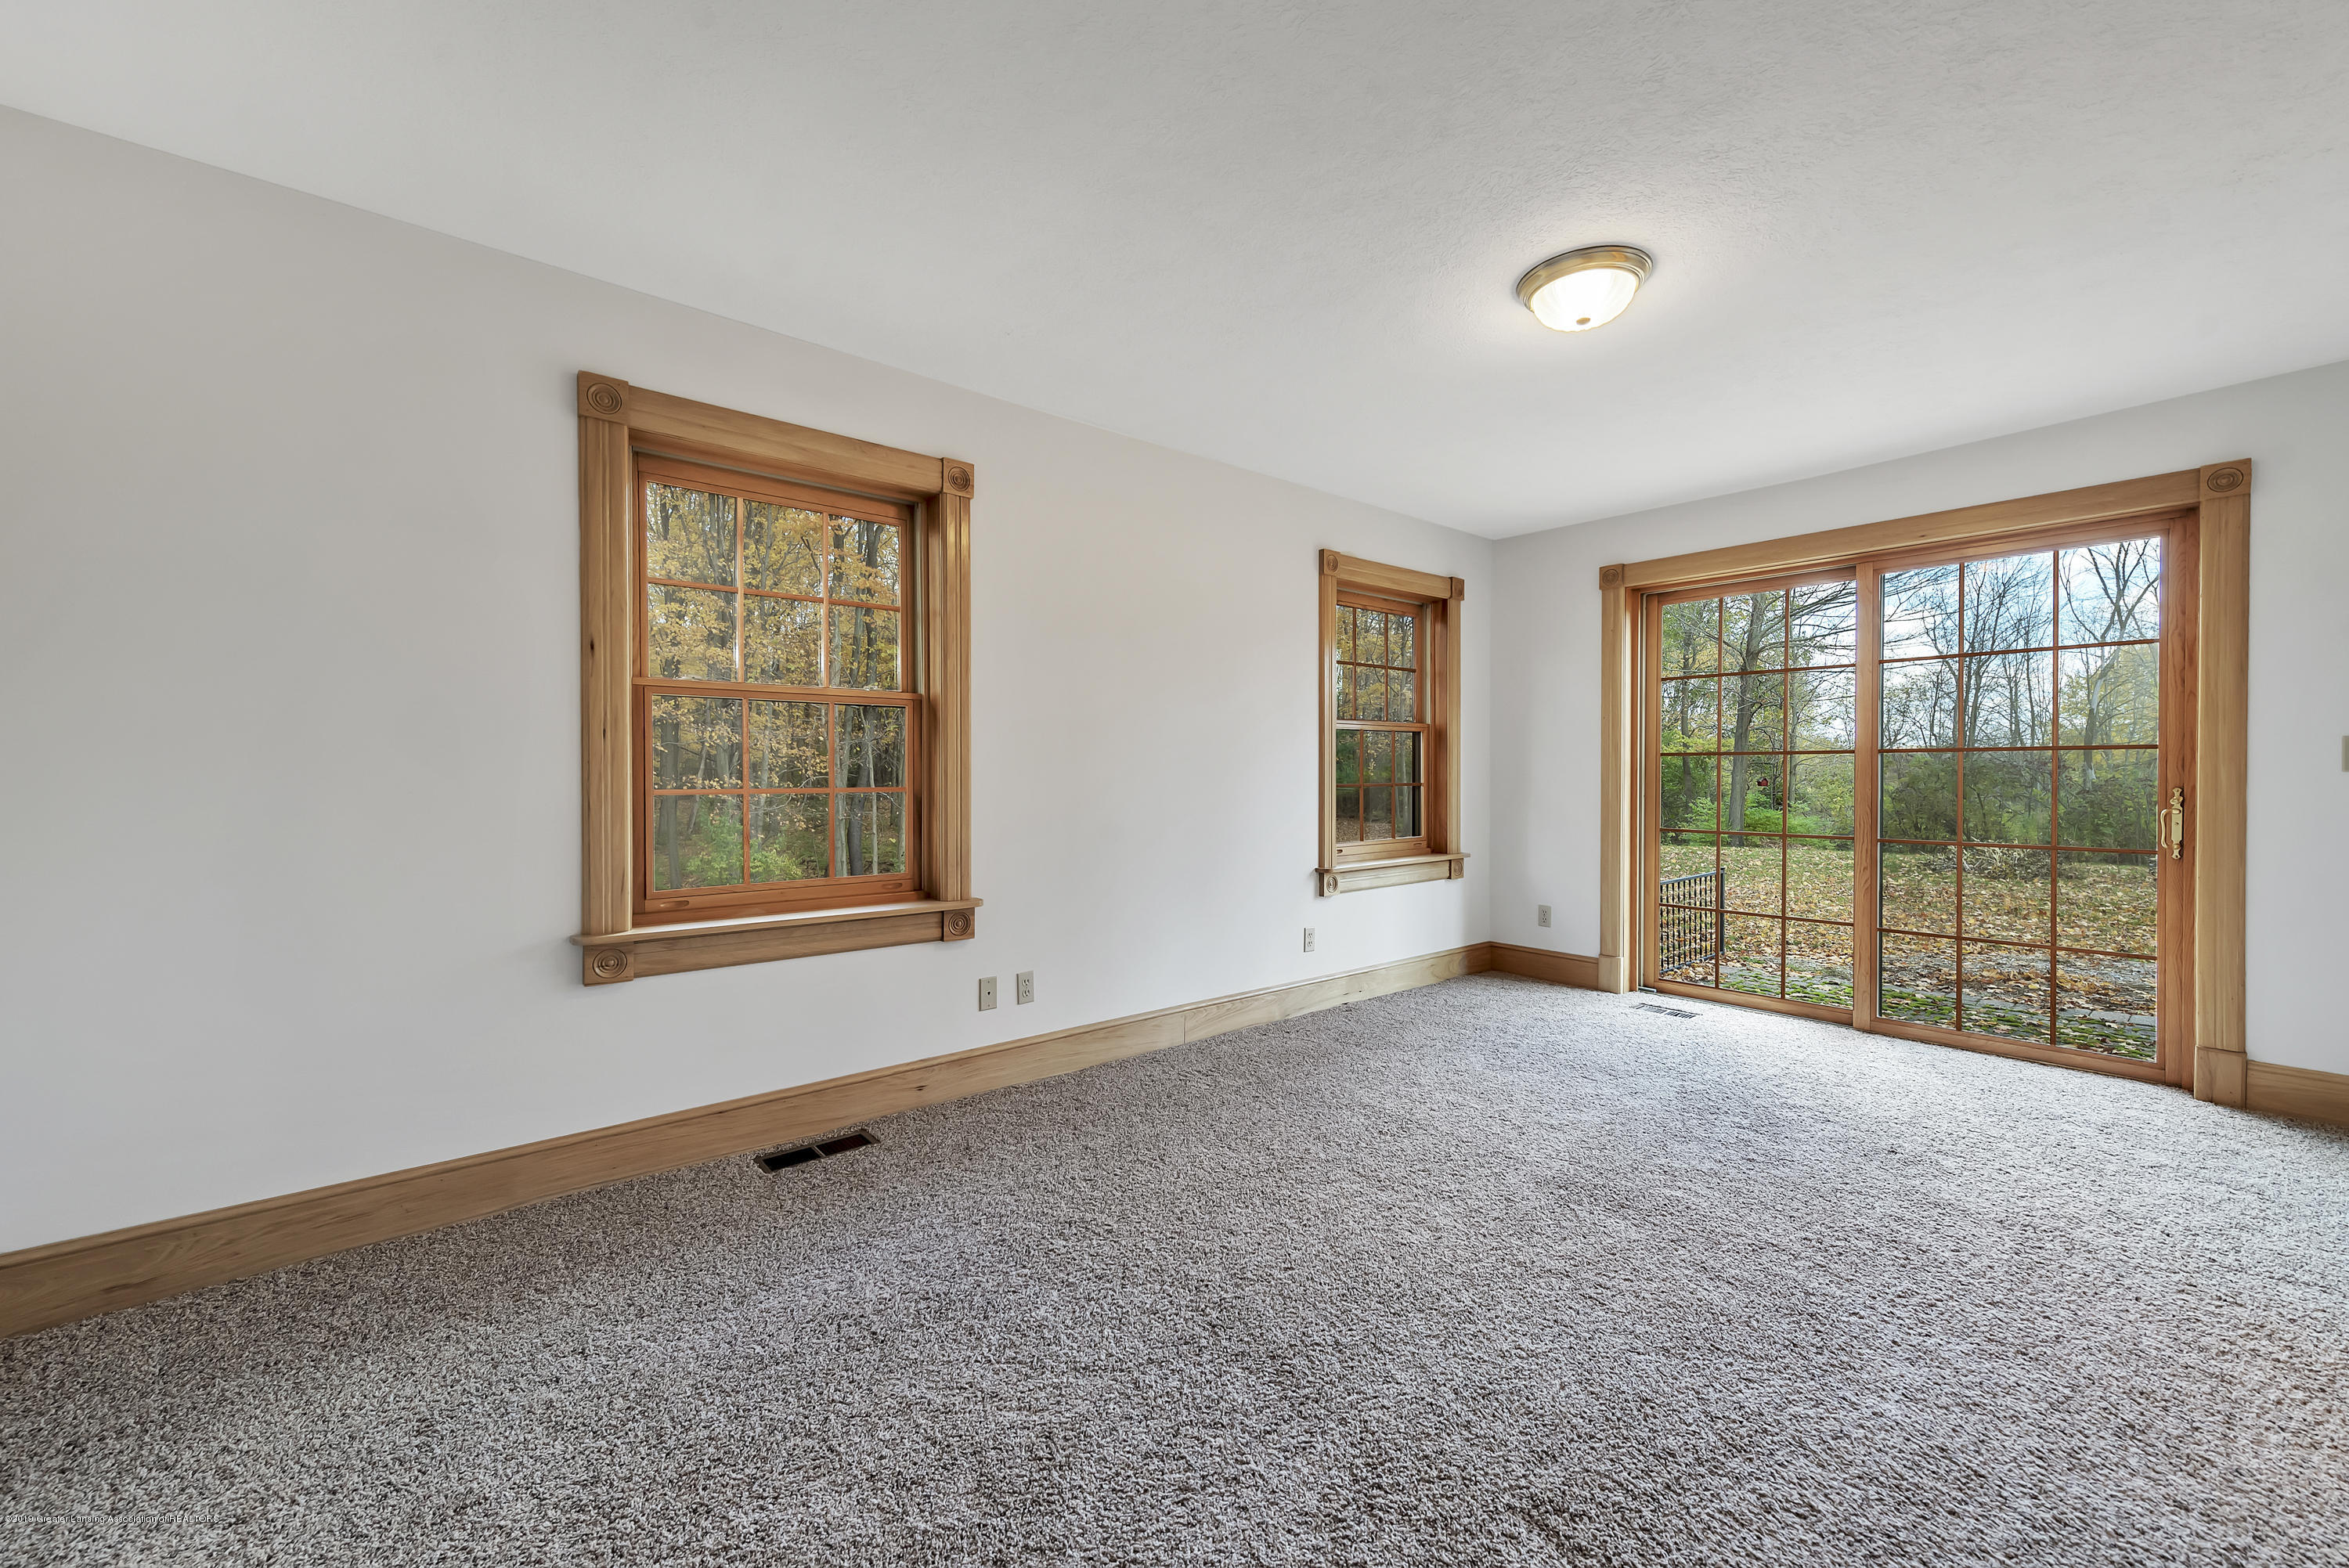 10865 Barnes Rd - 10865-Barnes-Rd-WindowStill-Real-Estate- - 25